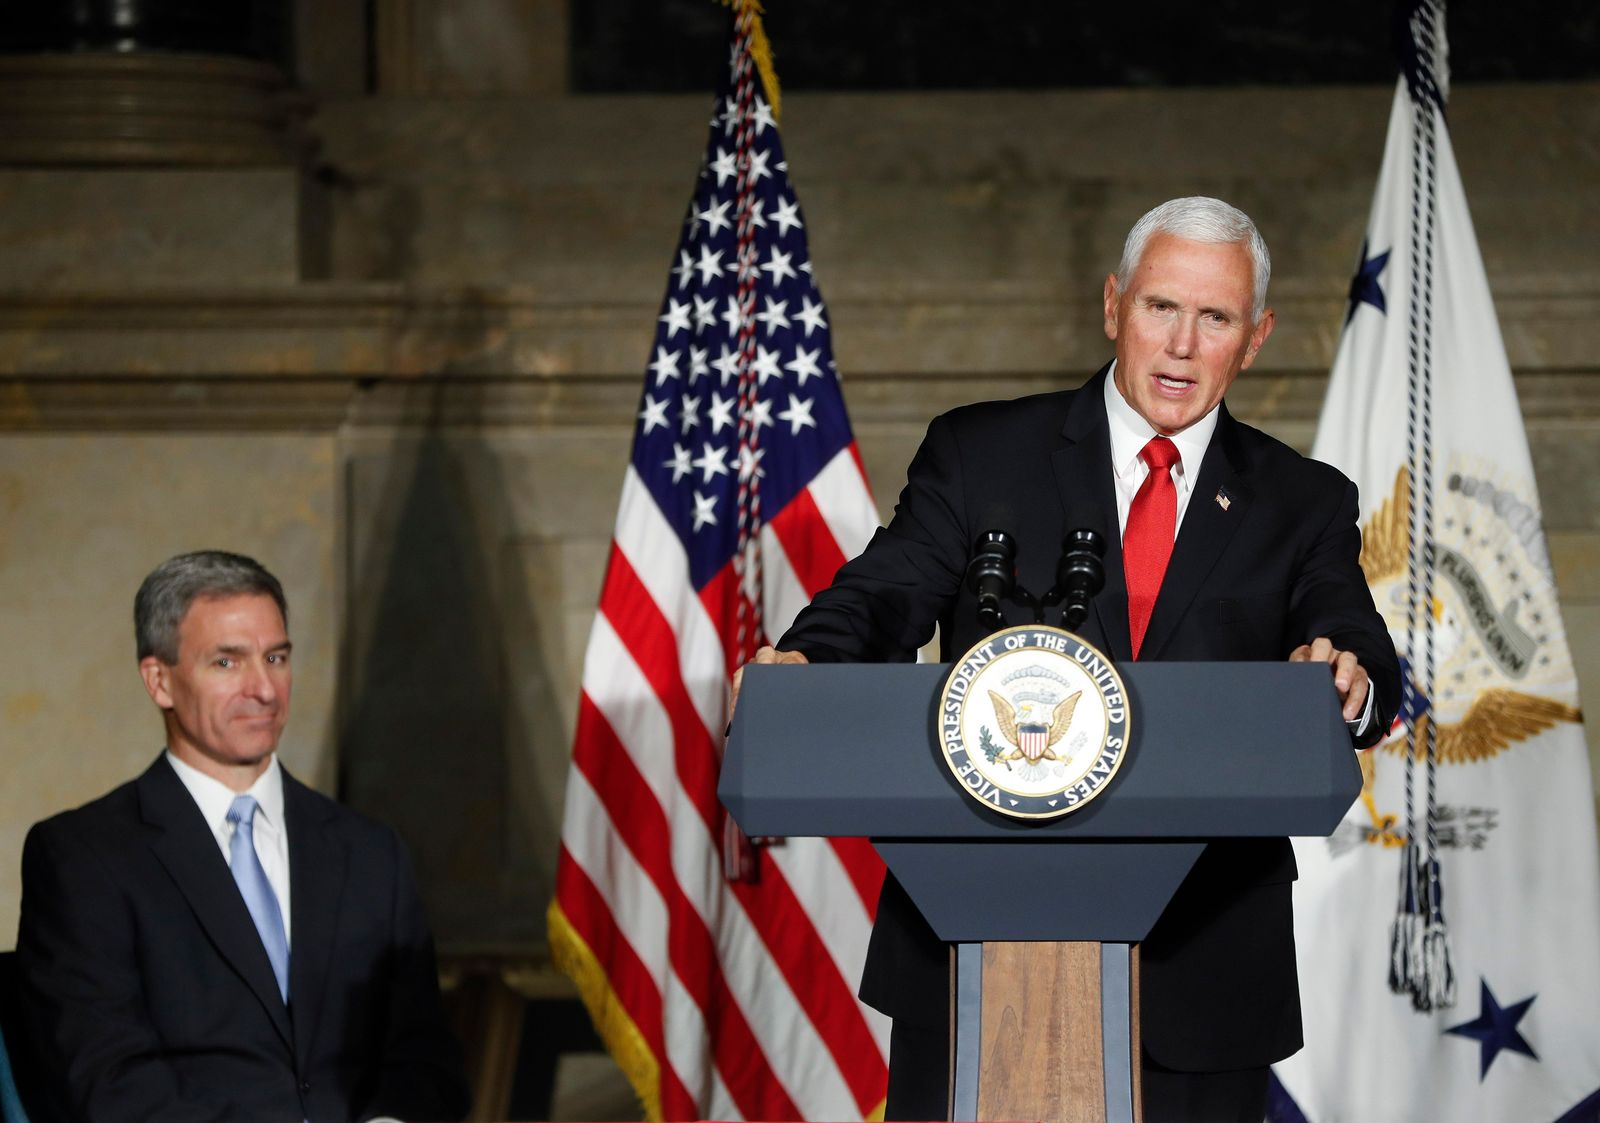 FILE - In this July 4, 2019 photo, Vice President Mike Pence speaks at a naturalization ceremony for new naturalized citizens in celebration of Independence Day at the National Archives in Washington. Trump administration rules that could deny green cards to immigrants if they use Medicaid, food stamps, housing vouchers or other forms of public assistance are going into effect.  (AP Photo/Pablo Martinez Monsivais)